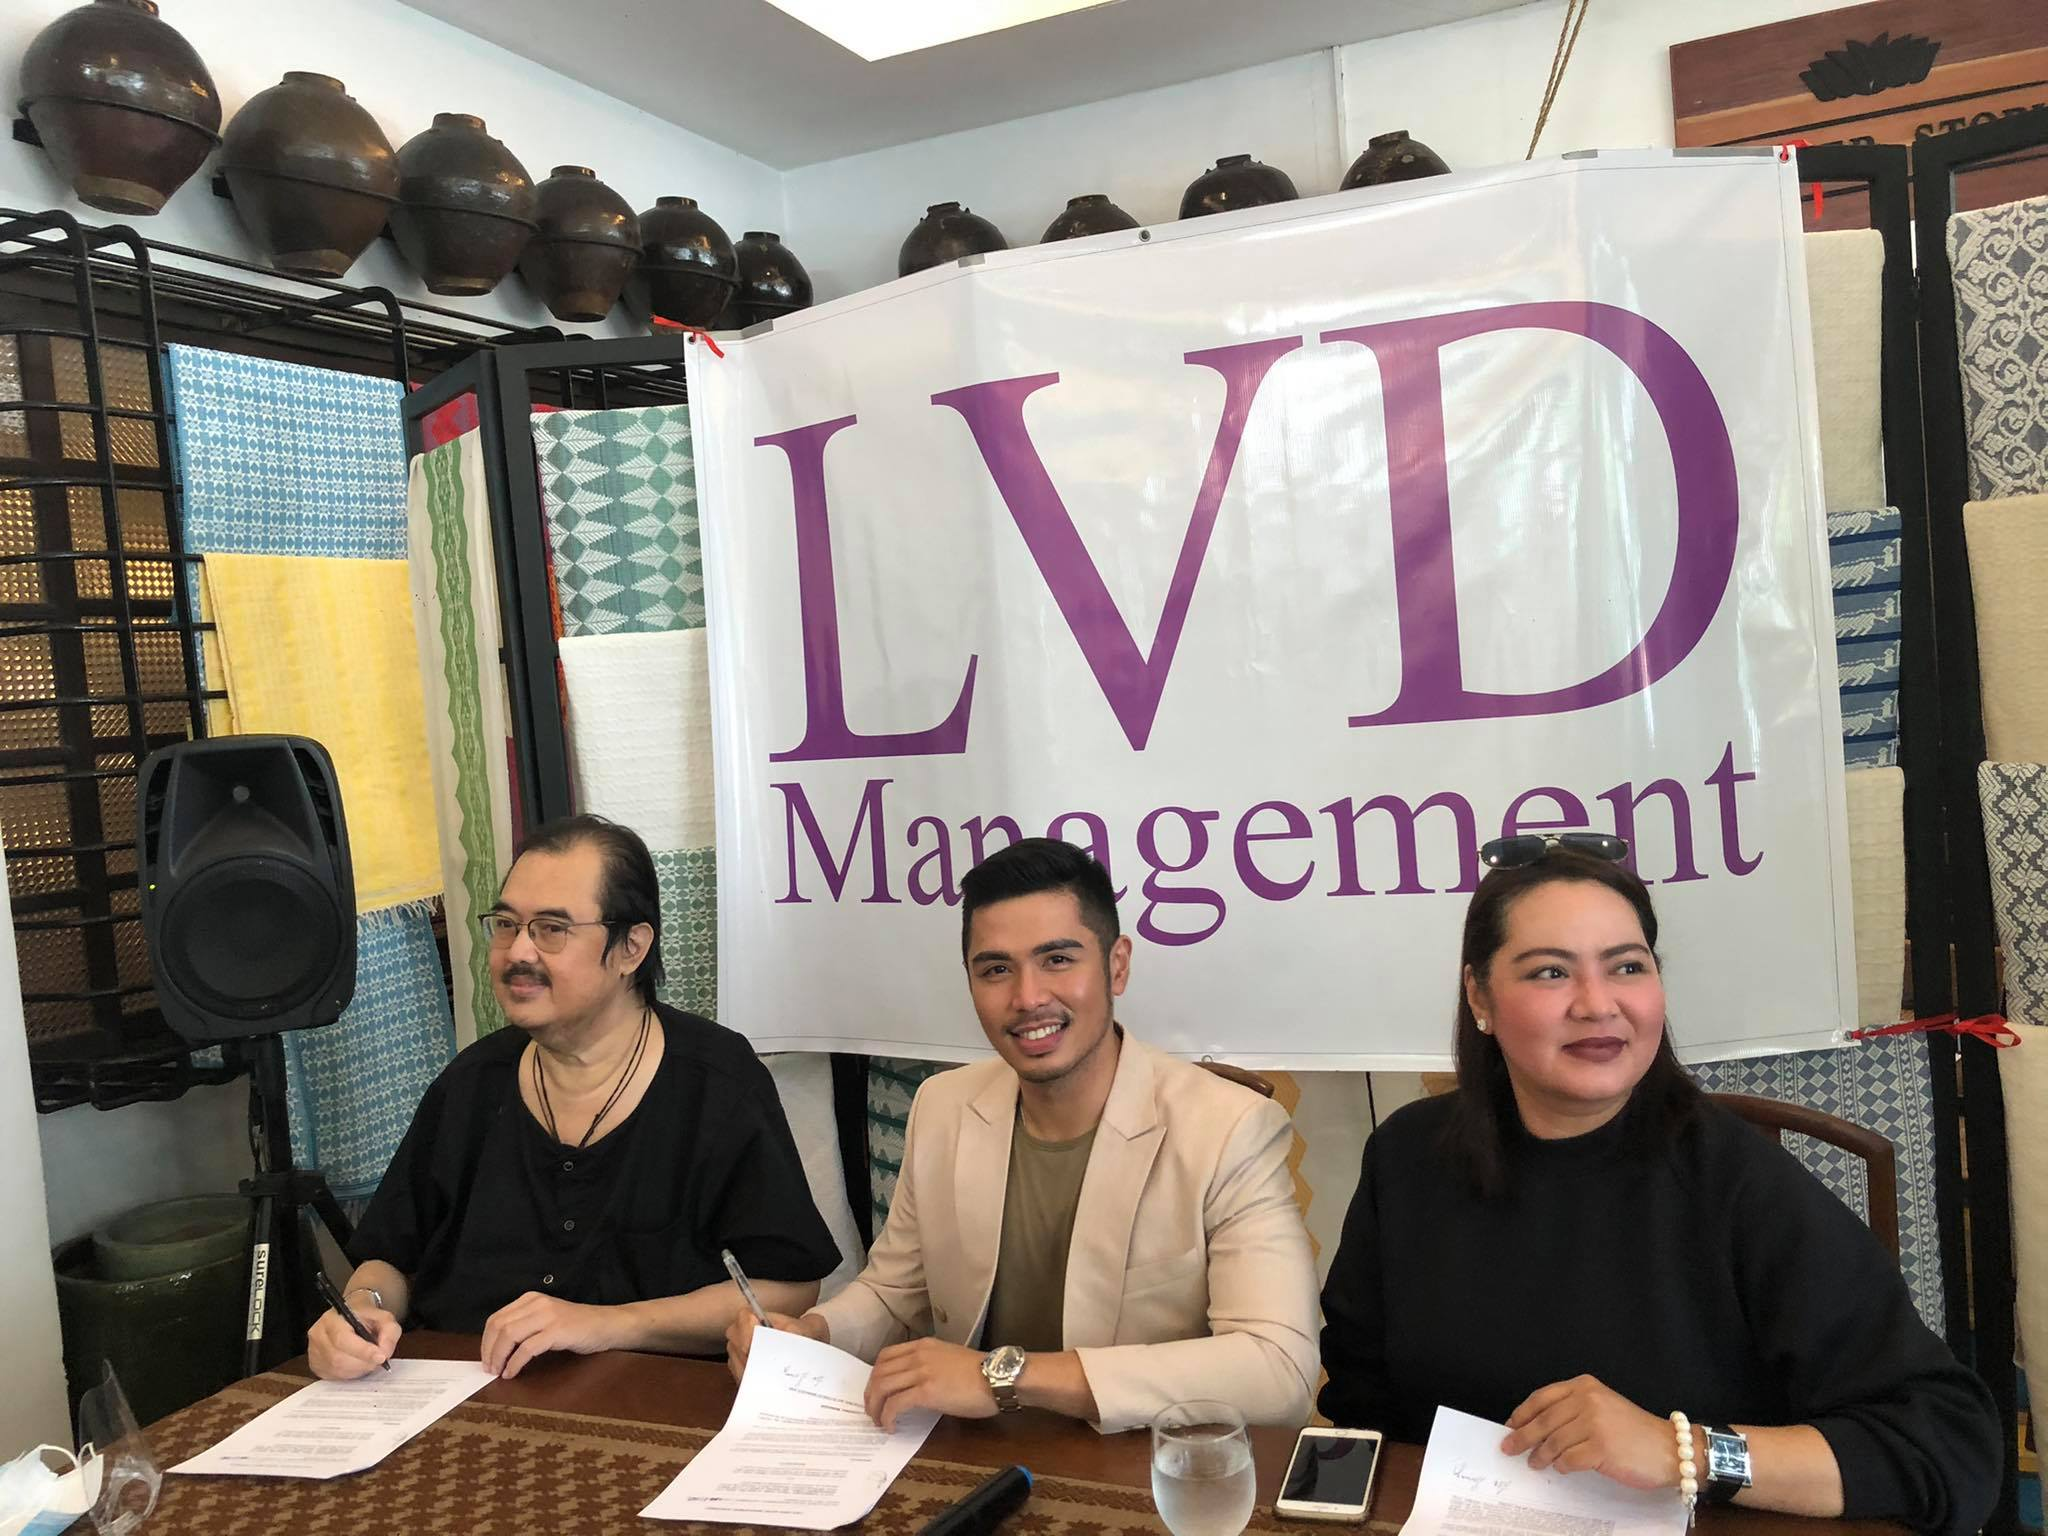 Jolo Estrada signs contract with LVD Management. In photo are Leo Dominguez (left) and Jolo's mom Precy Ejercito (right).